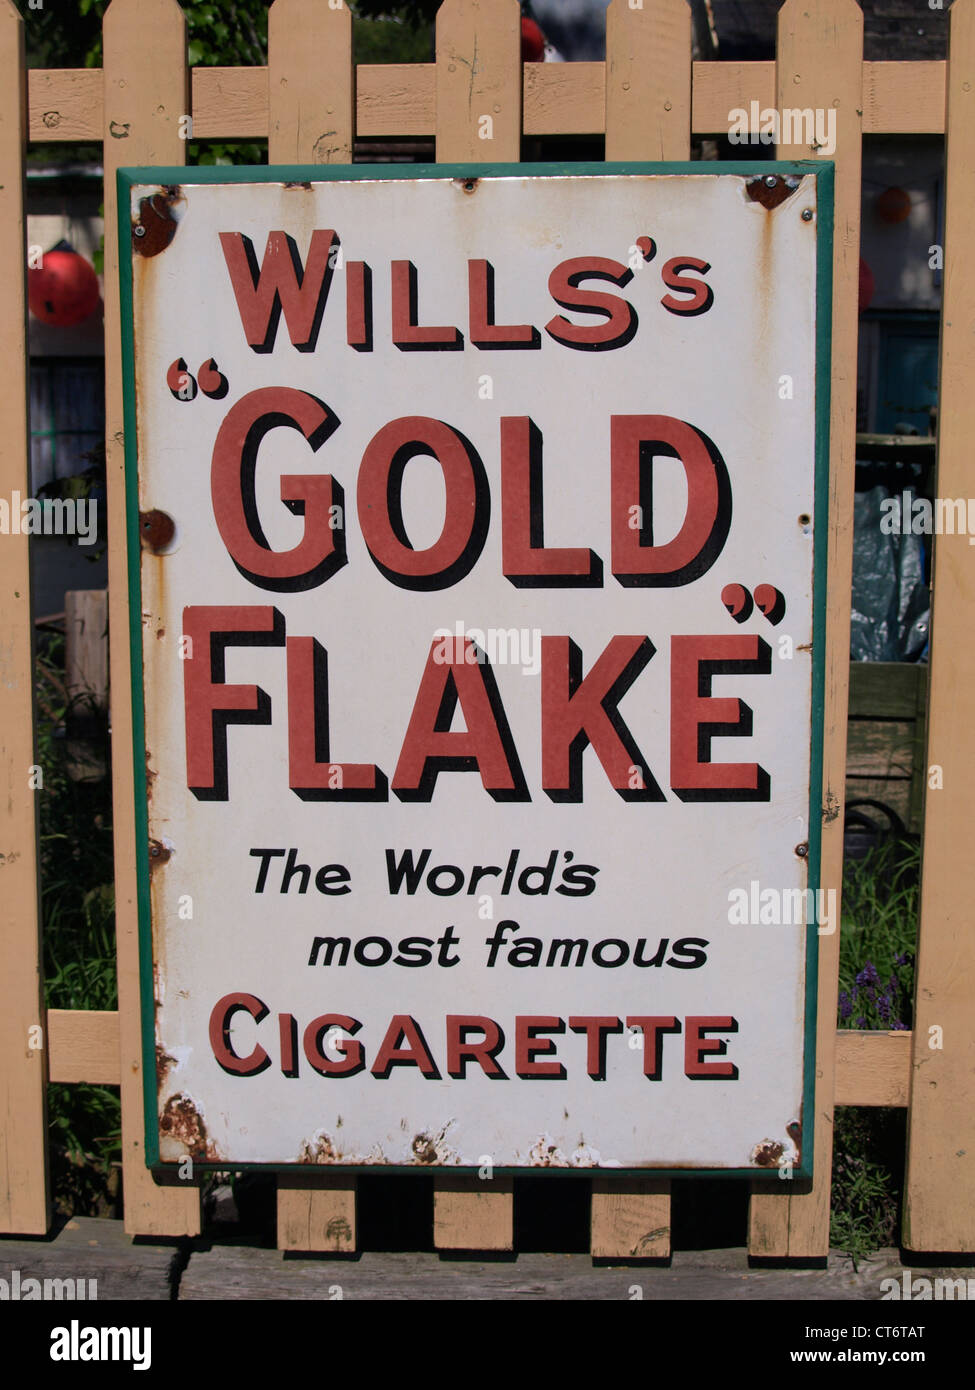 Vintage metal advertising sign for Wills's Gold Flake Cigarettes, UK - Stock Image